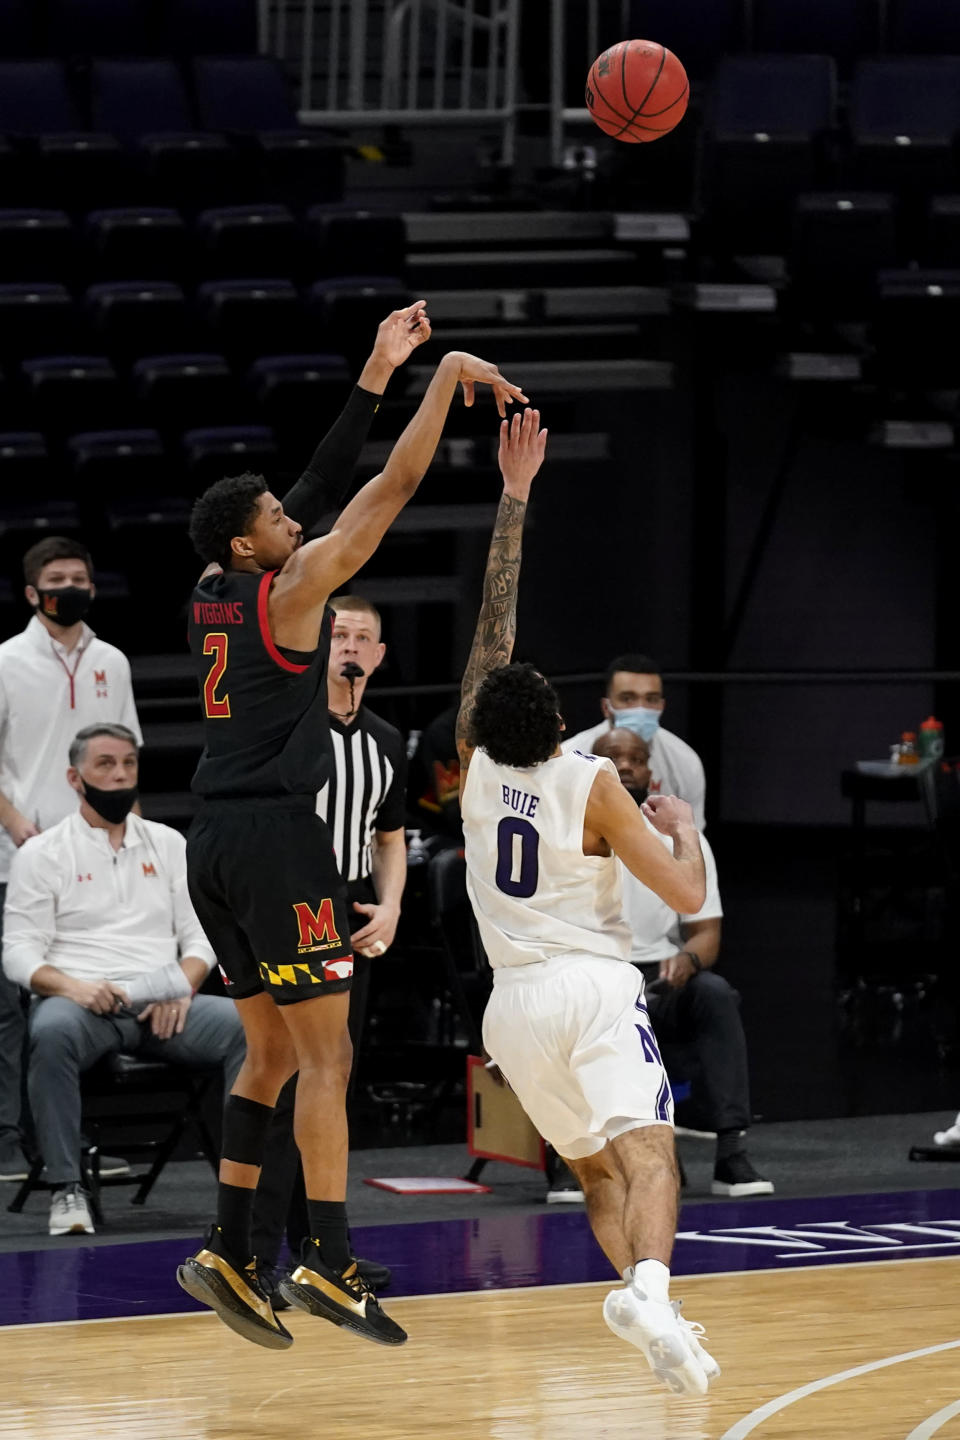 Maryland guard Aaron Wiggins, left, shoots over Northwestern guard Boo Buie during the second half of an NCAA college basketball game in Evanston, Ill., Wednesday, March 3, 2021. Northwestern won 60-55.(AP Photo/Nam Y. Huh)